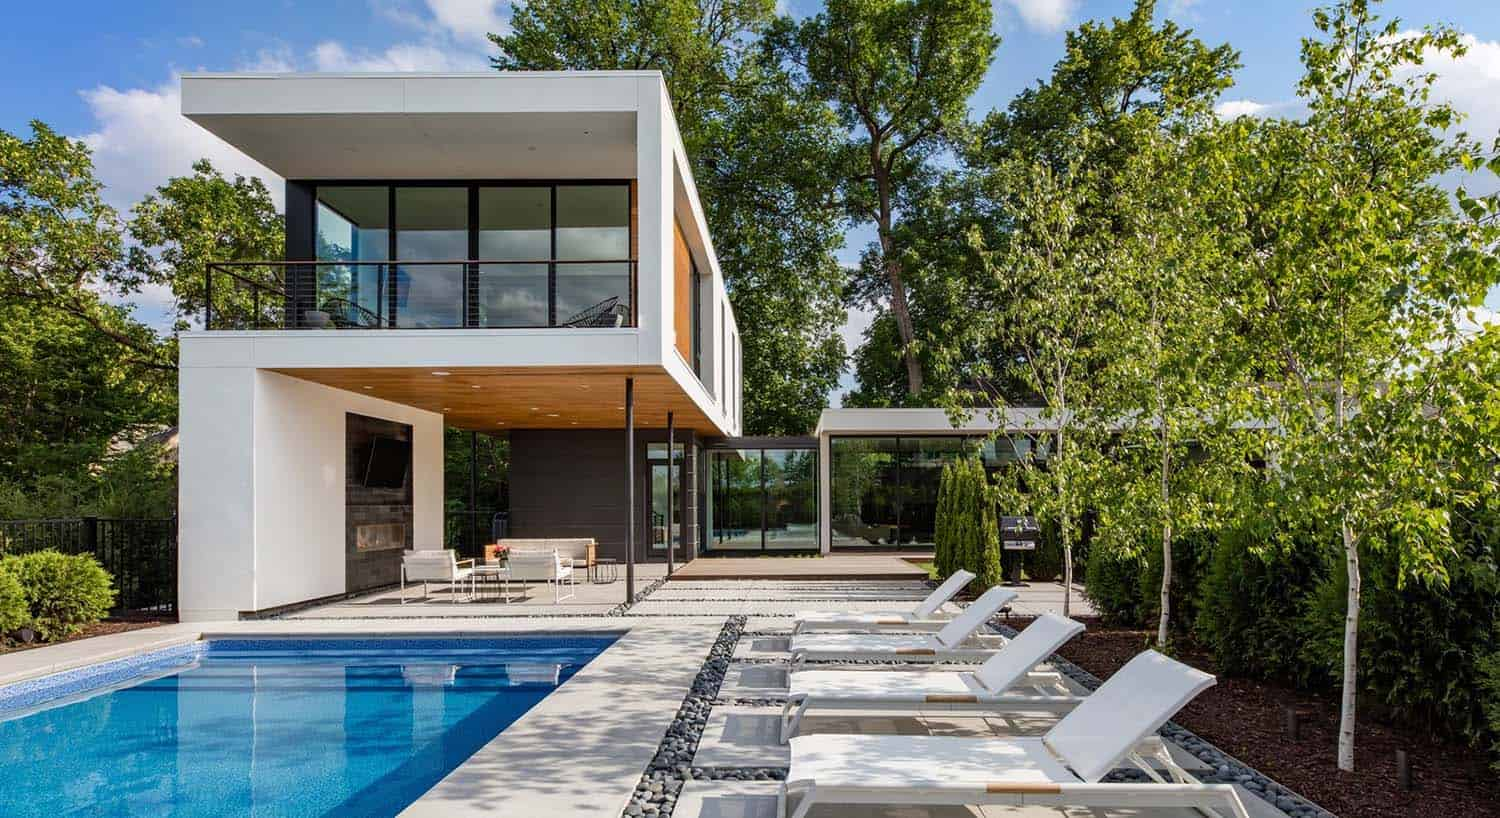 Dynamic Modern Home-Peterssen Keller Architecture-03-1 Kindesign